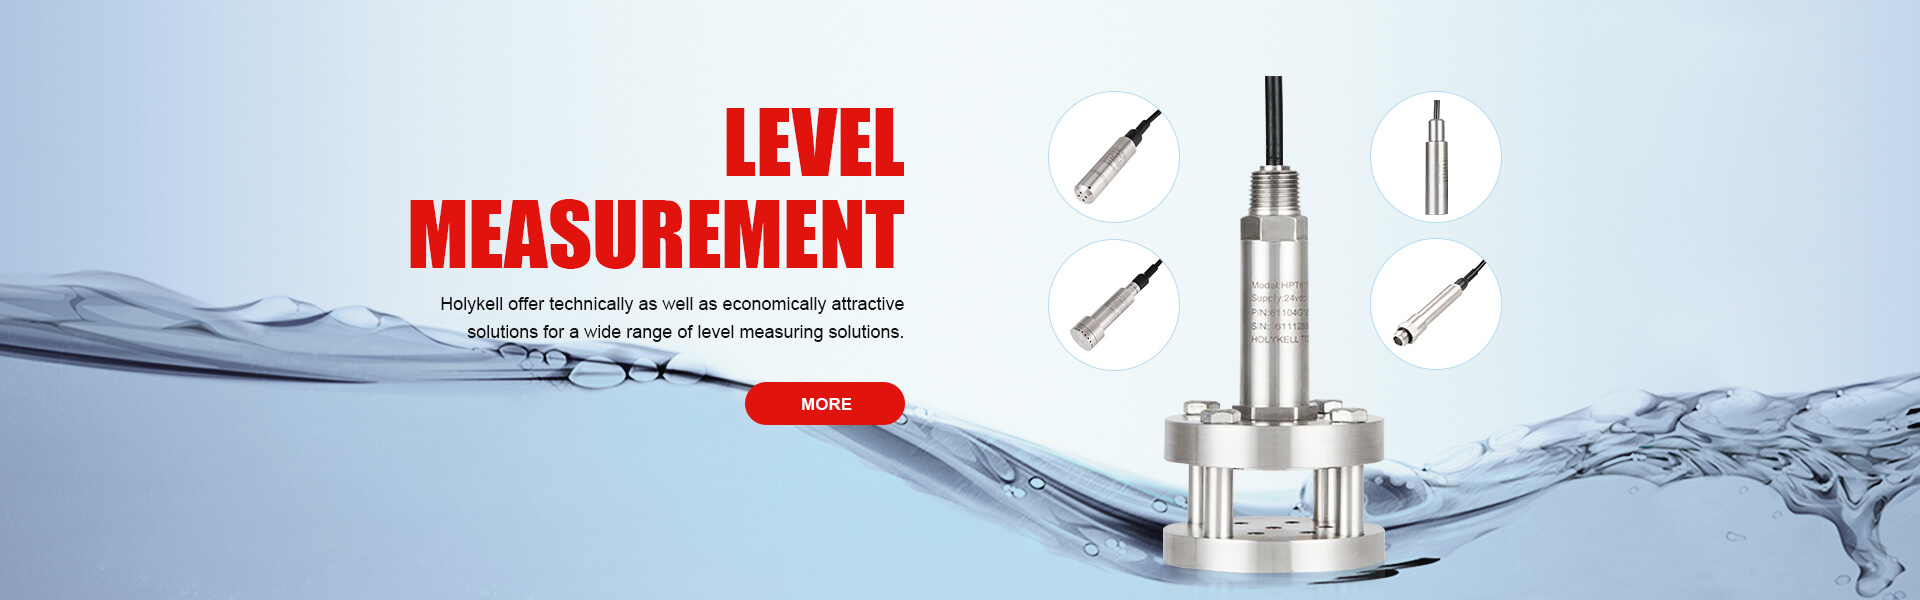 Level measurement used in water treatment